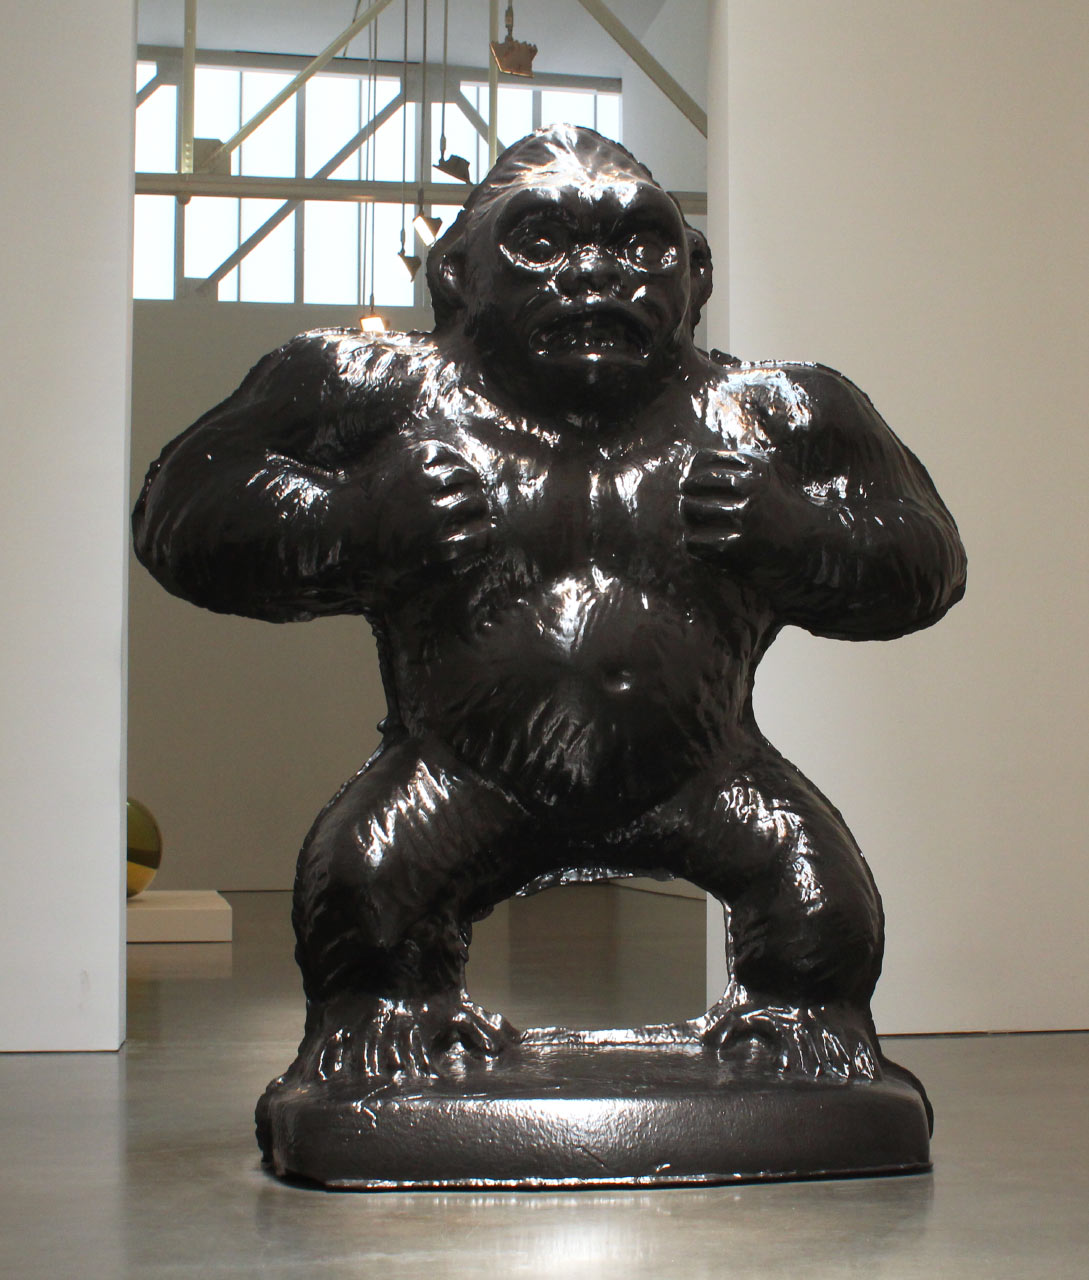 "JEFF KOONS ""Gorilla"" 2006-2012, Black granite.  © Jeff Koons. Courtesy Gagosian Gallery."